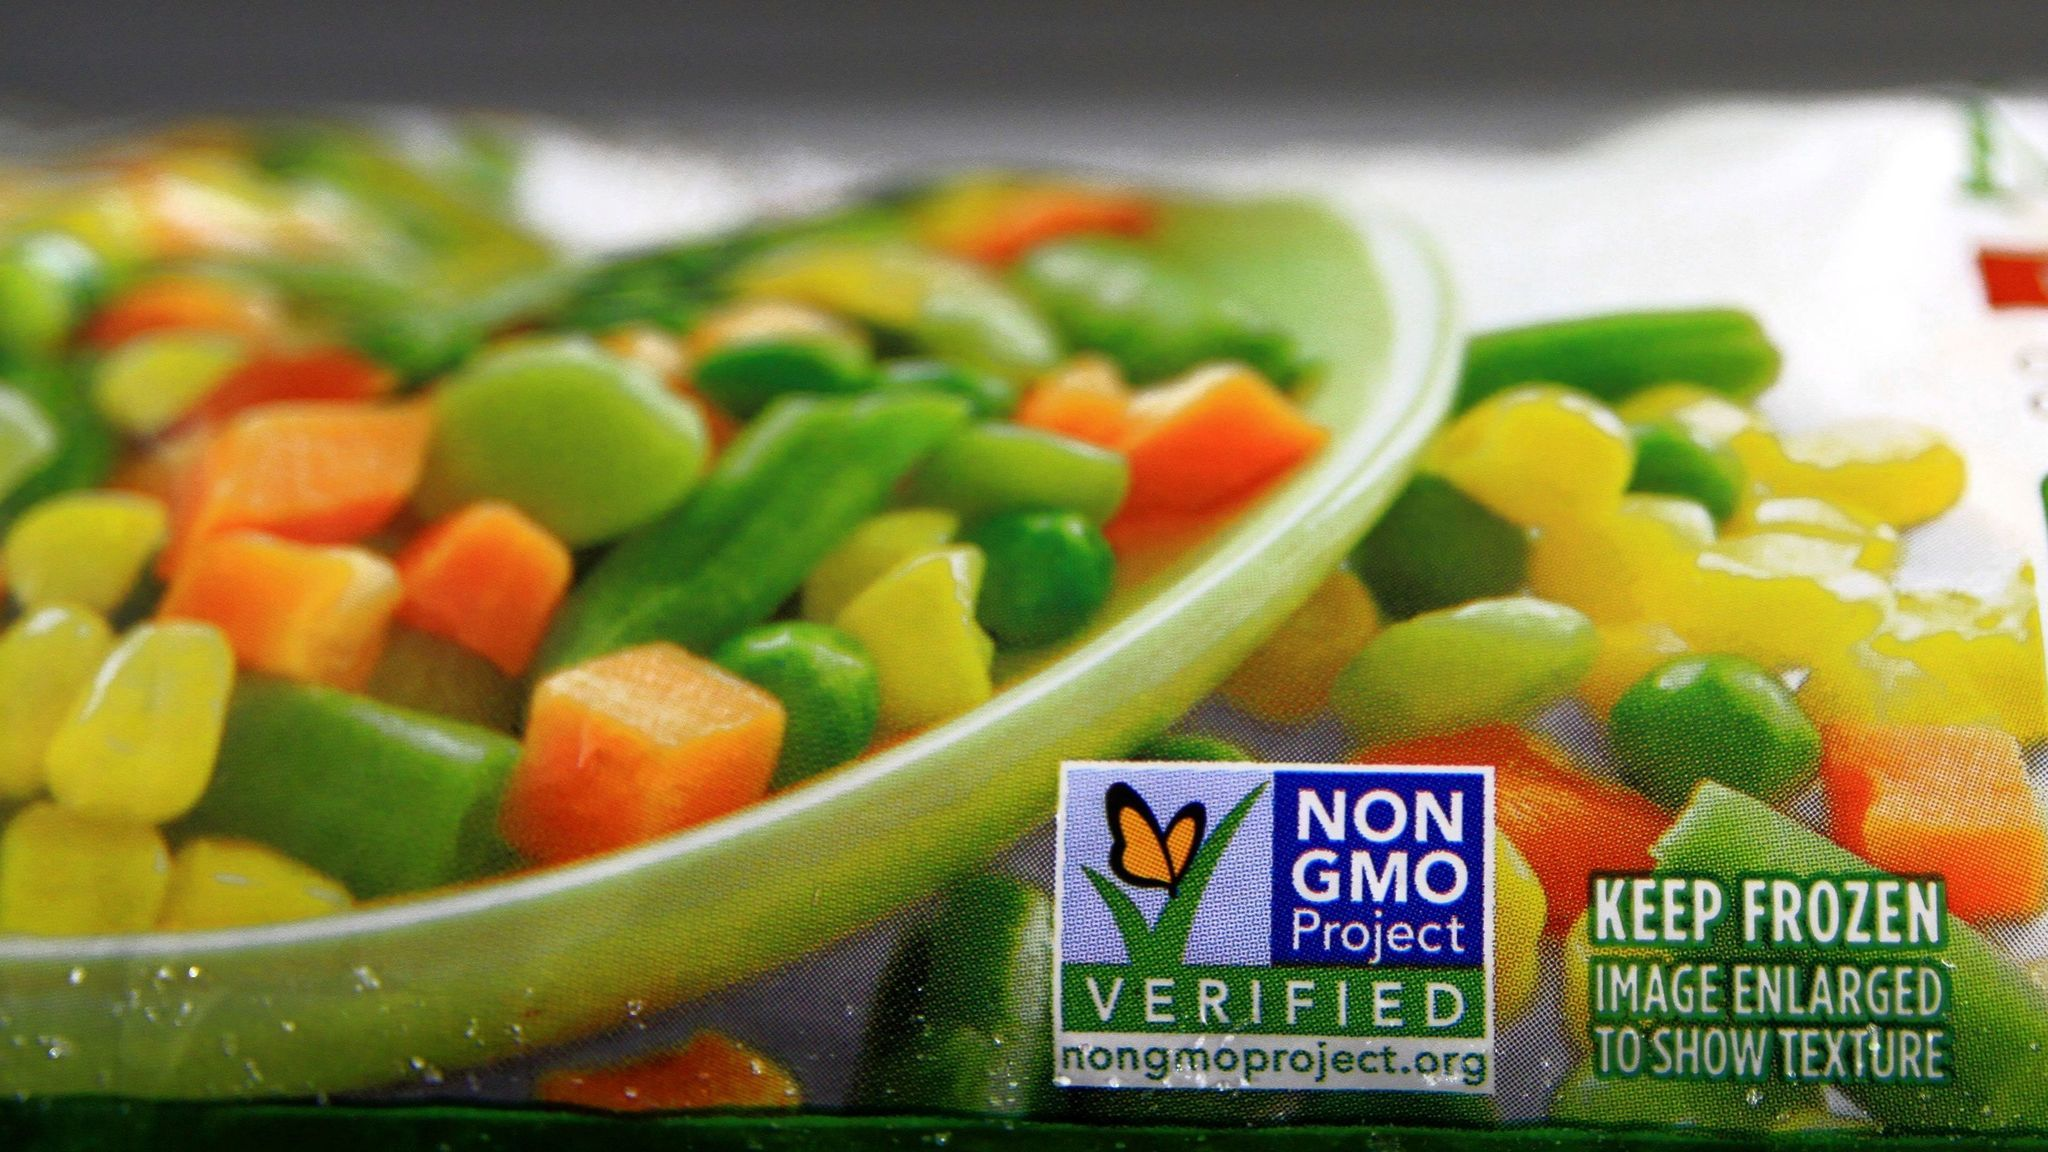 Cancer experts say there's no reason to shun genetically modified foods.